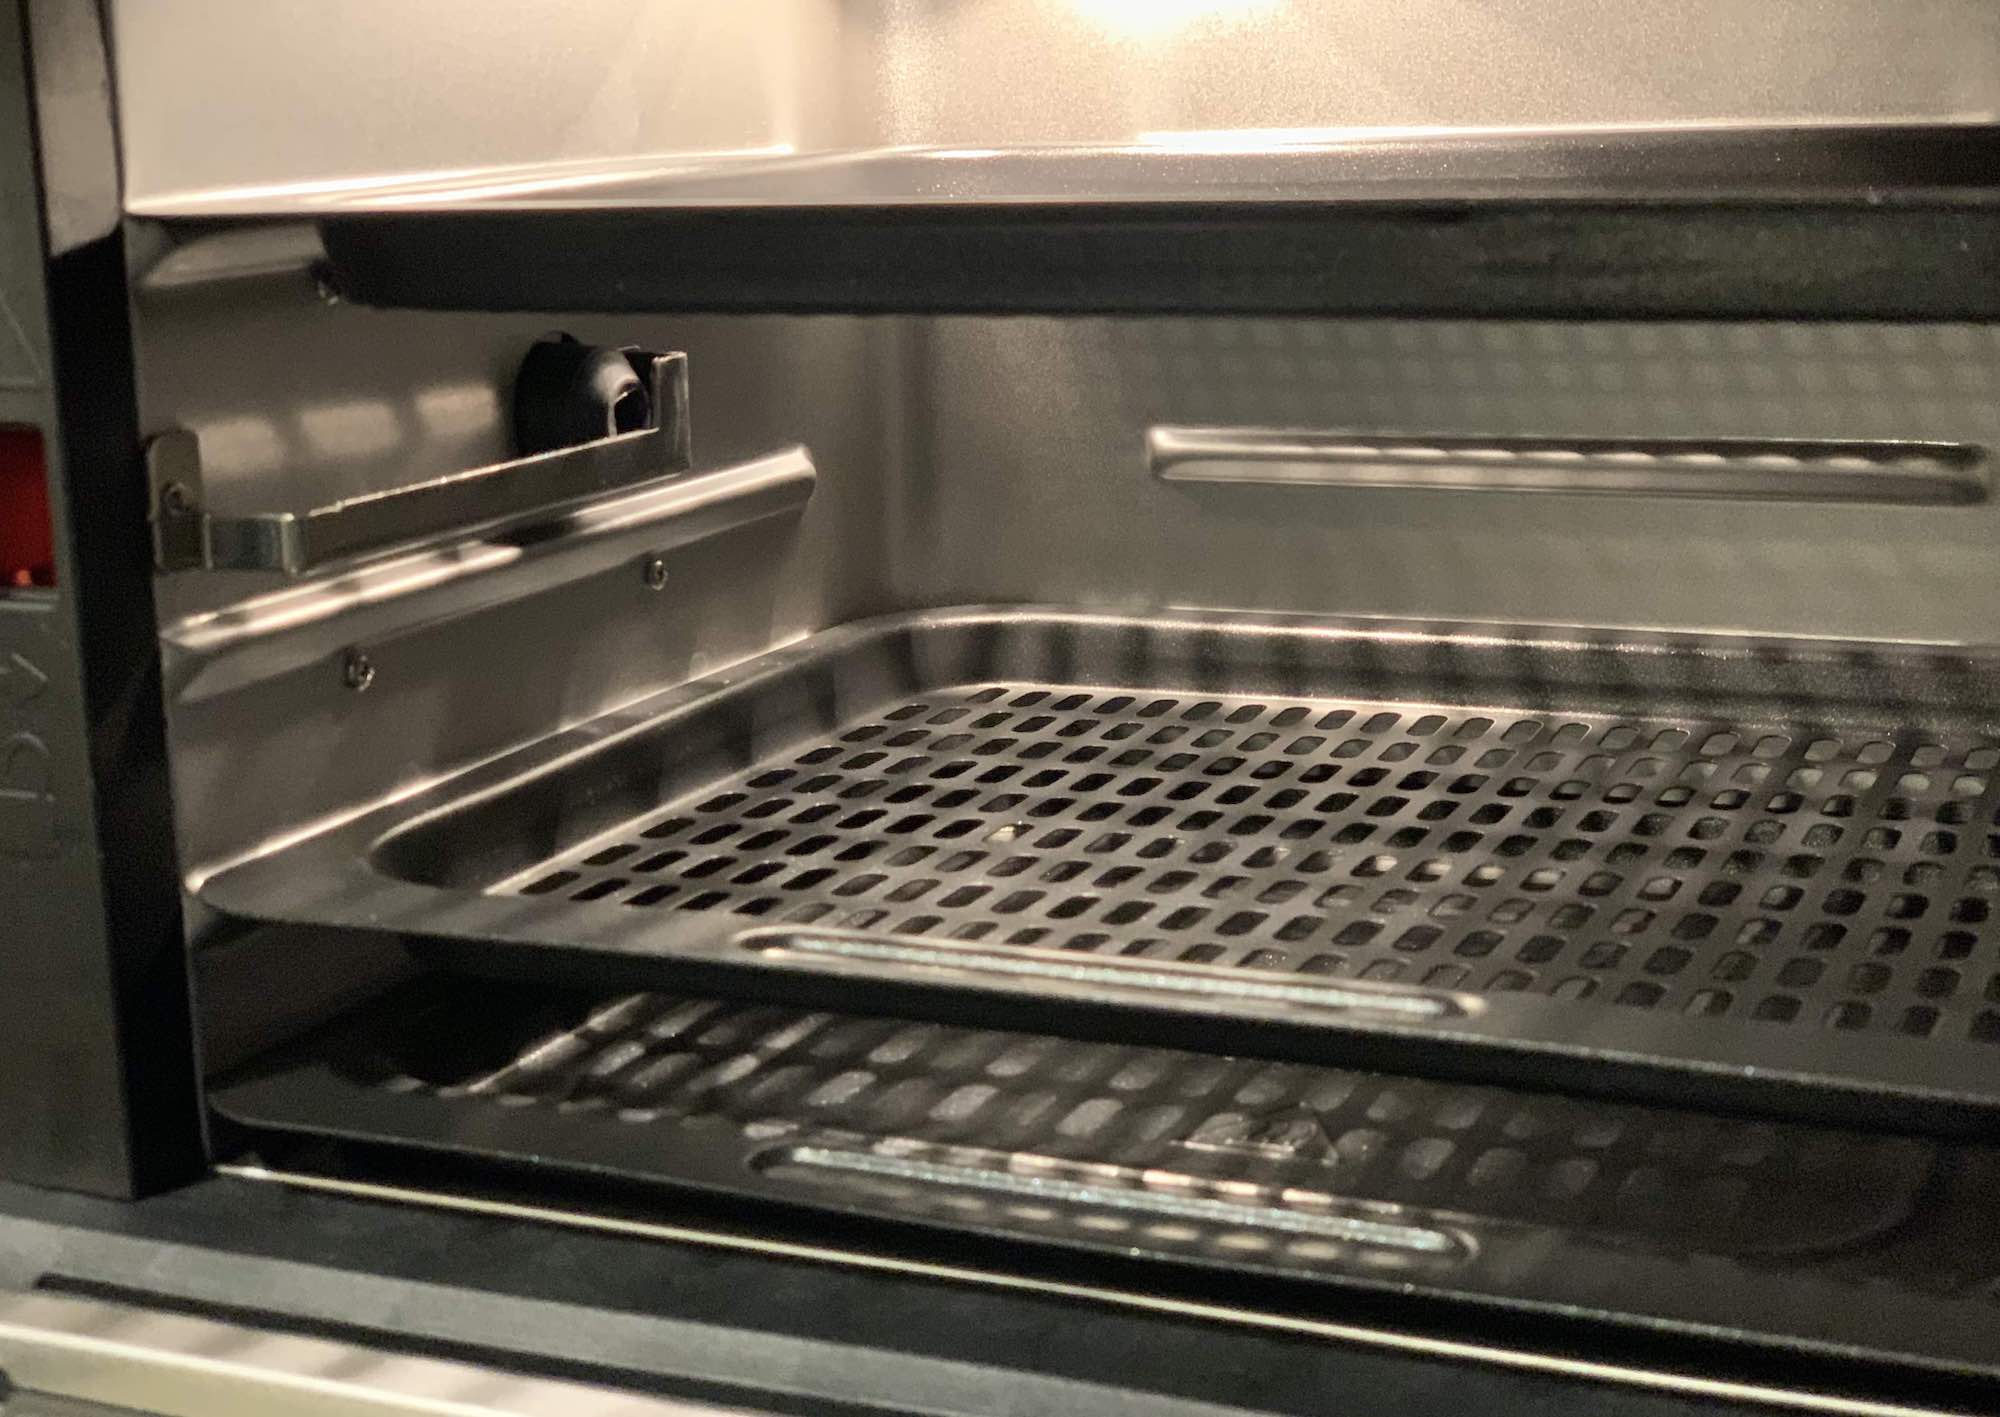 Three level oven rack Insignia Air Fryer